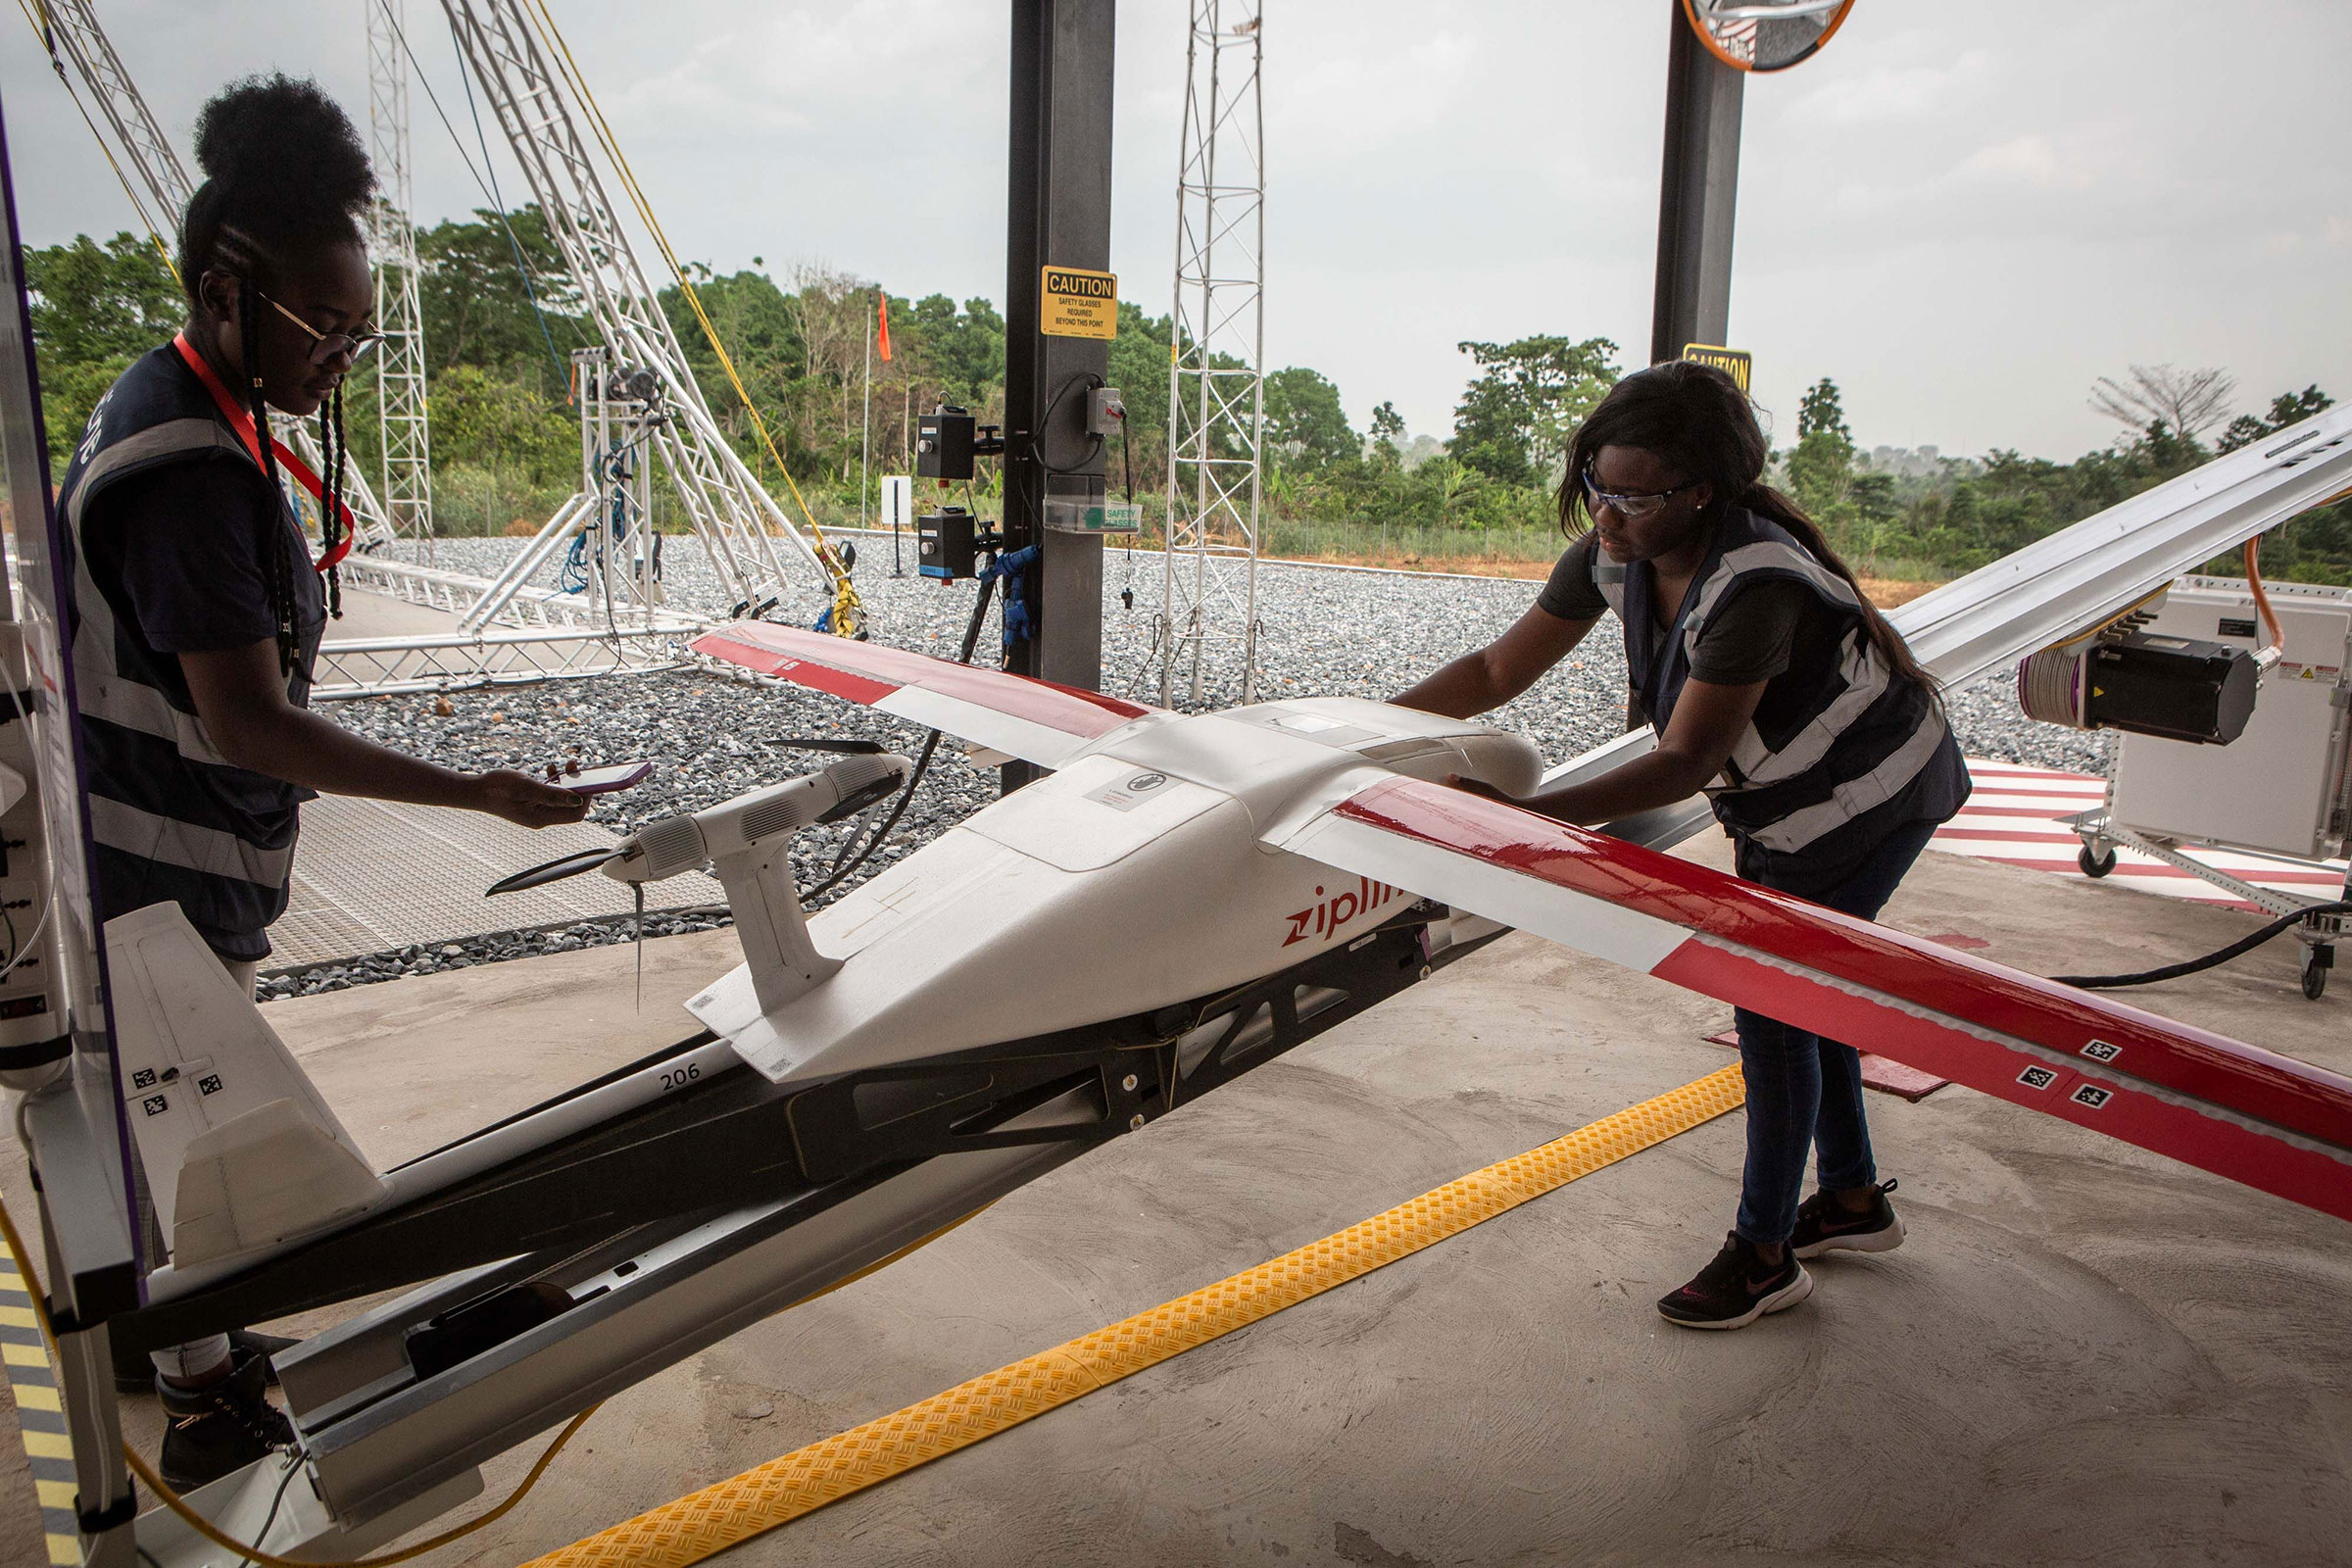 Staff members prepare a drone for the delivery of medical supplies at the drone delivery service base run by operator Zipline in Omenako, 40 miles north of Accra, Ghana on April 23, 2019.